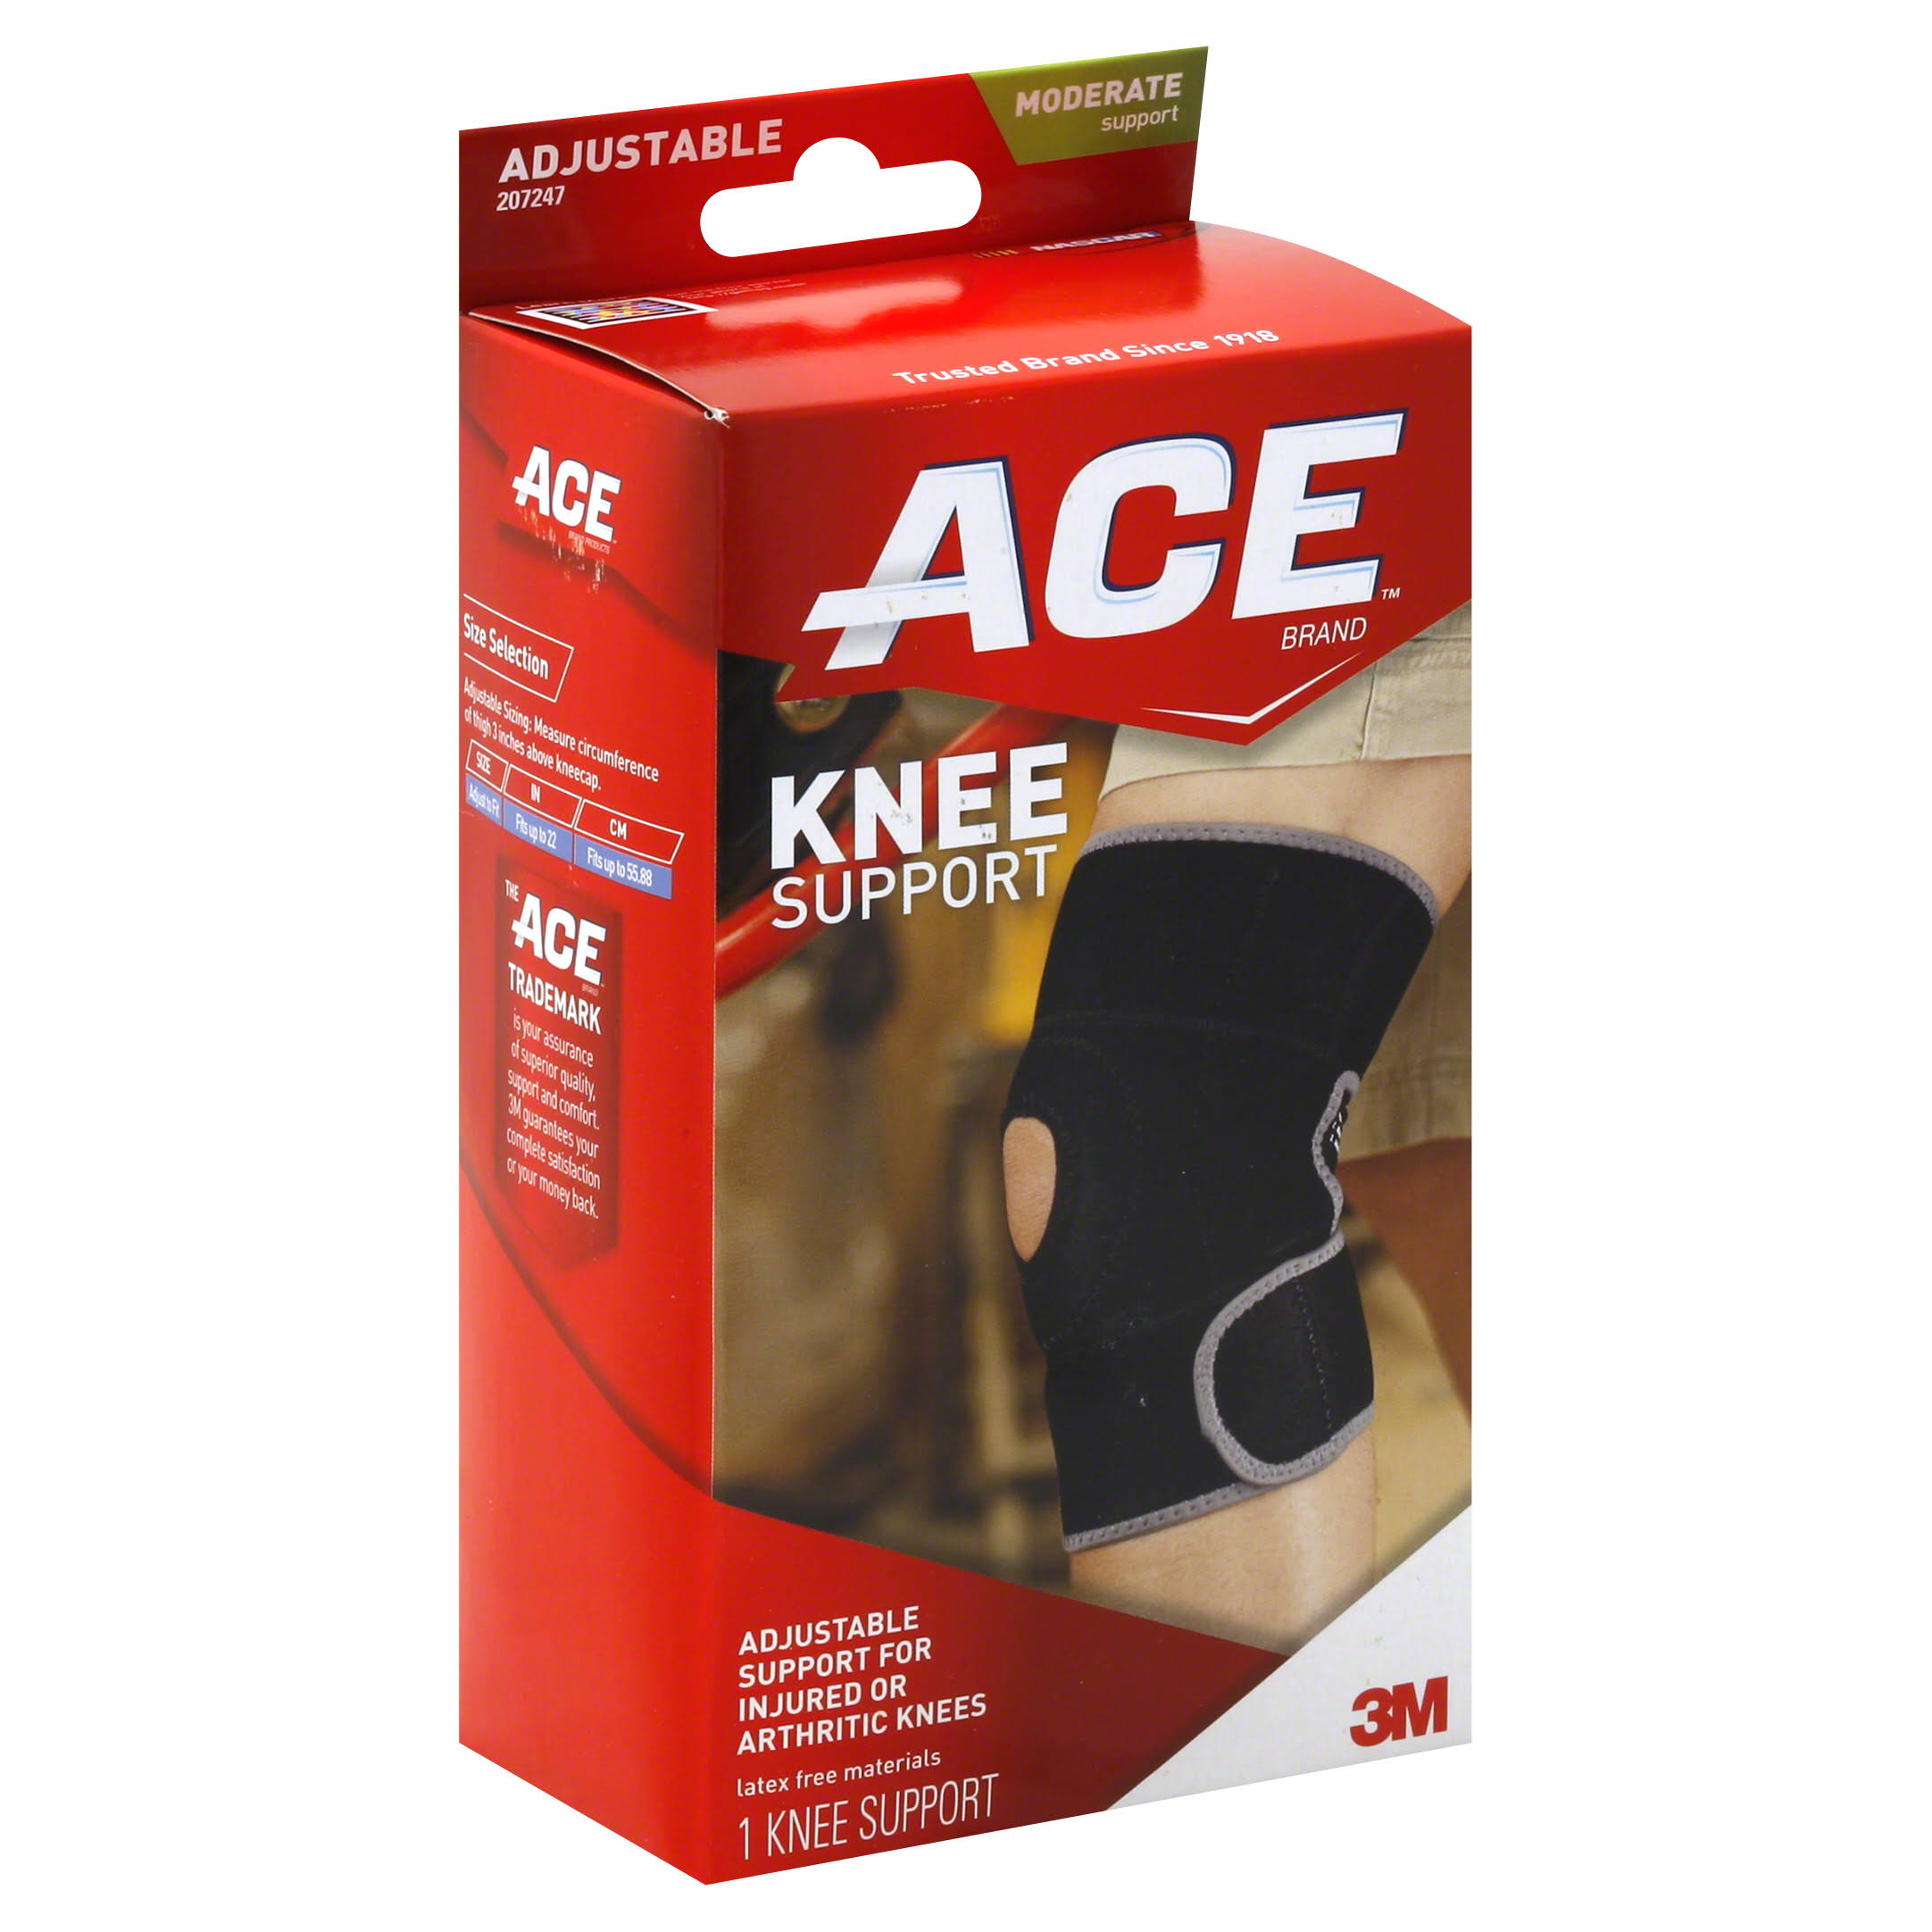 Ace Knee Support Wraparound Brace Adjustable Compression Neoprene - One Size, Black